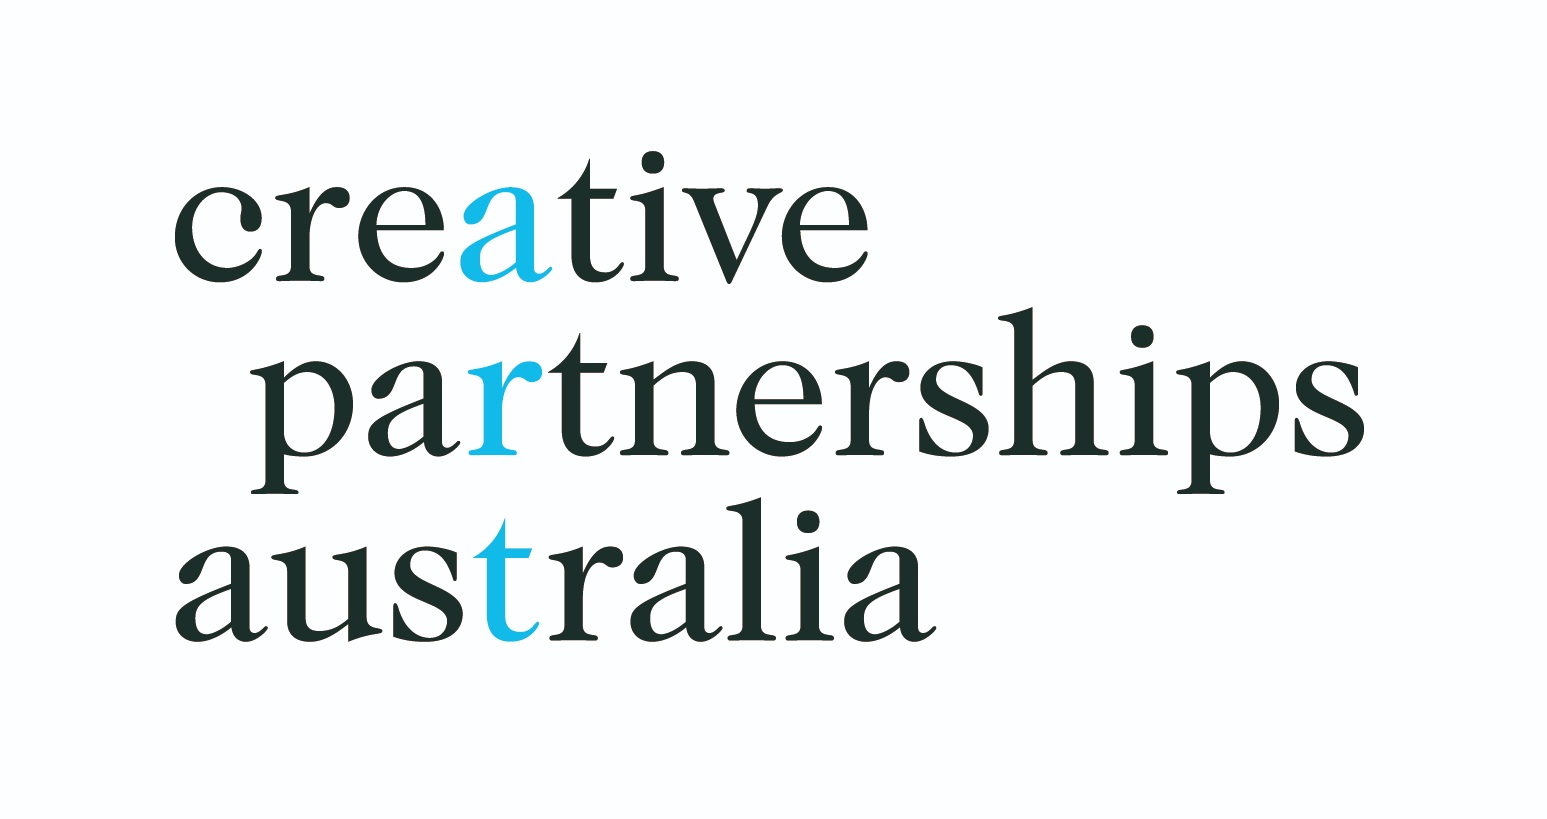 'So You Think You Can Dance [BAD]' is supported by Creative Partnerships Australia through Plus1.